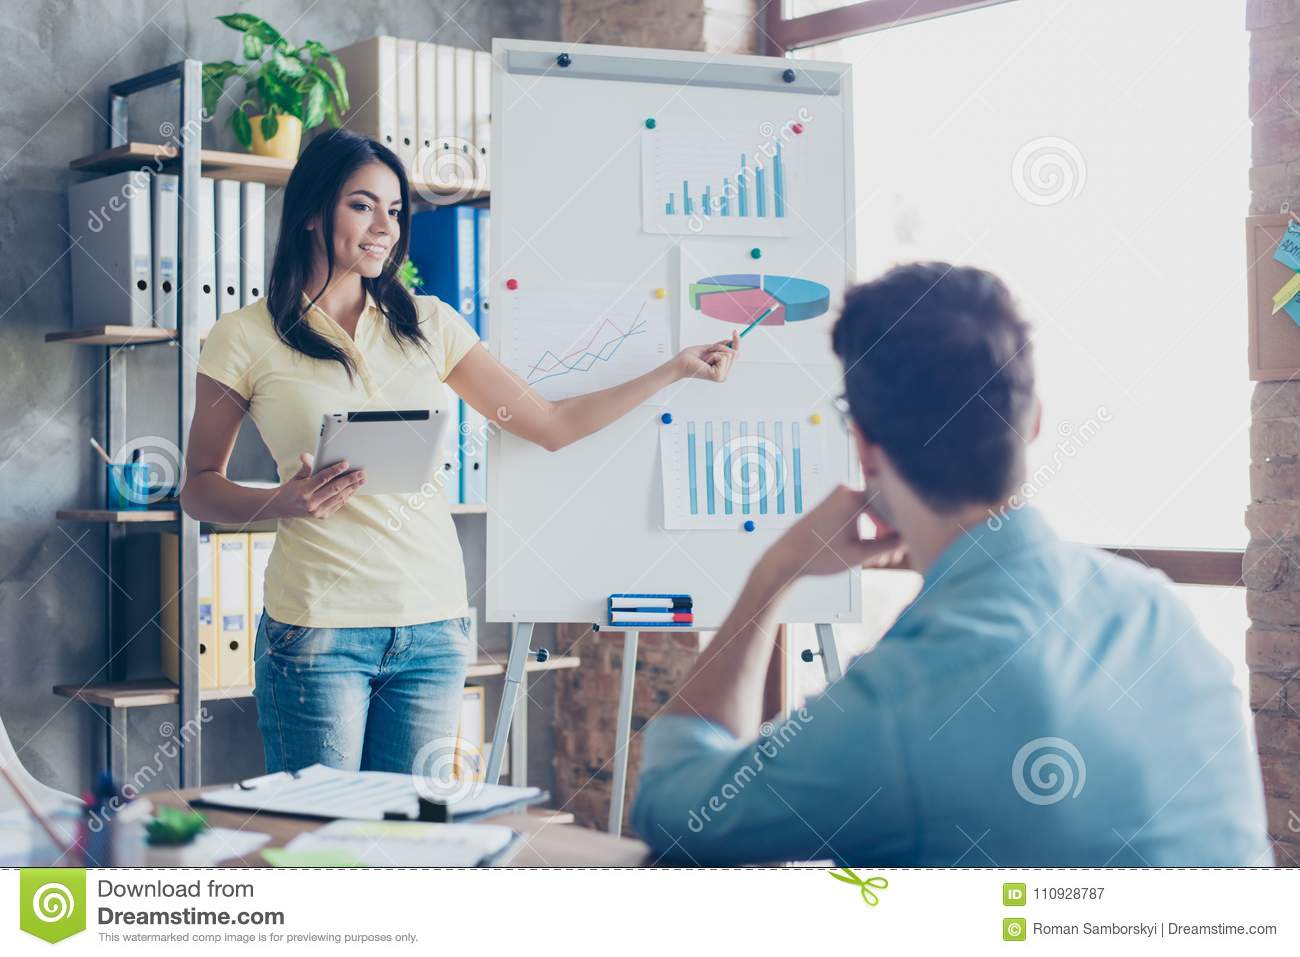 Employee making monthly report to her employer using modern gadget and flip board in office